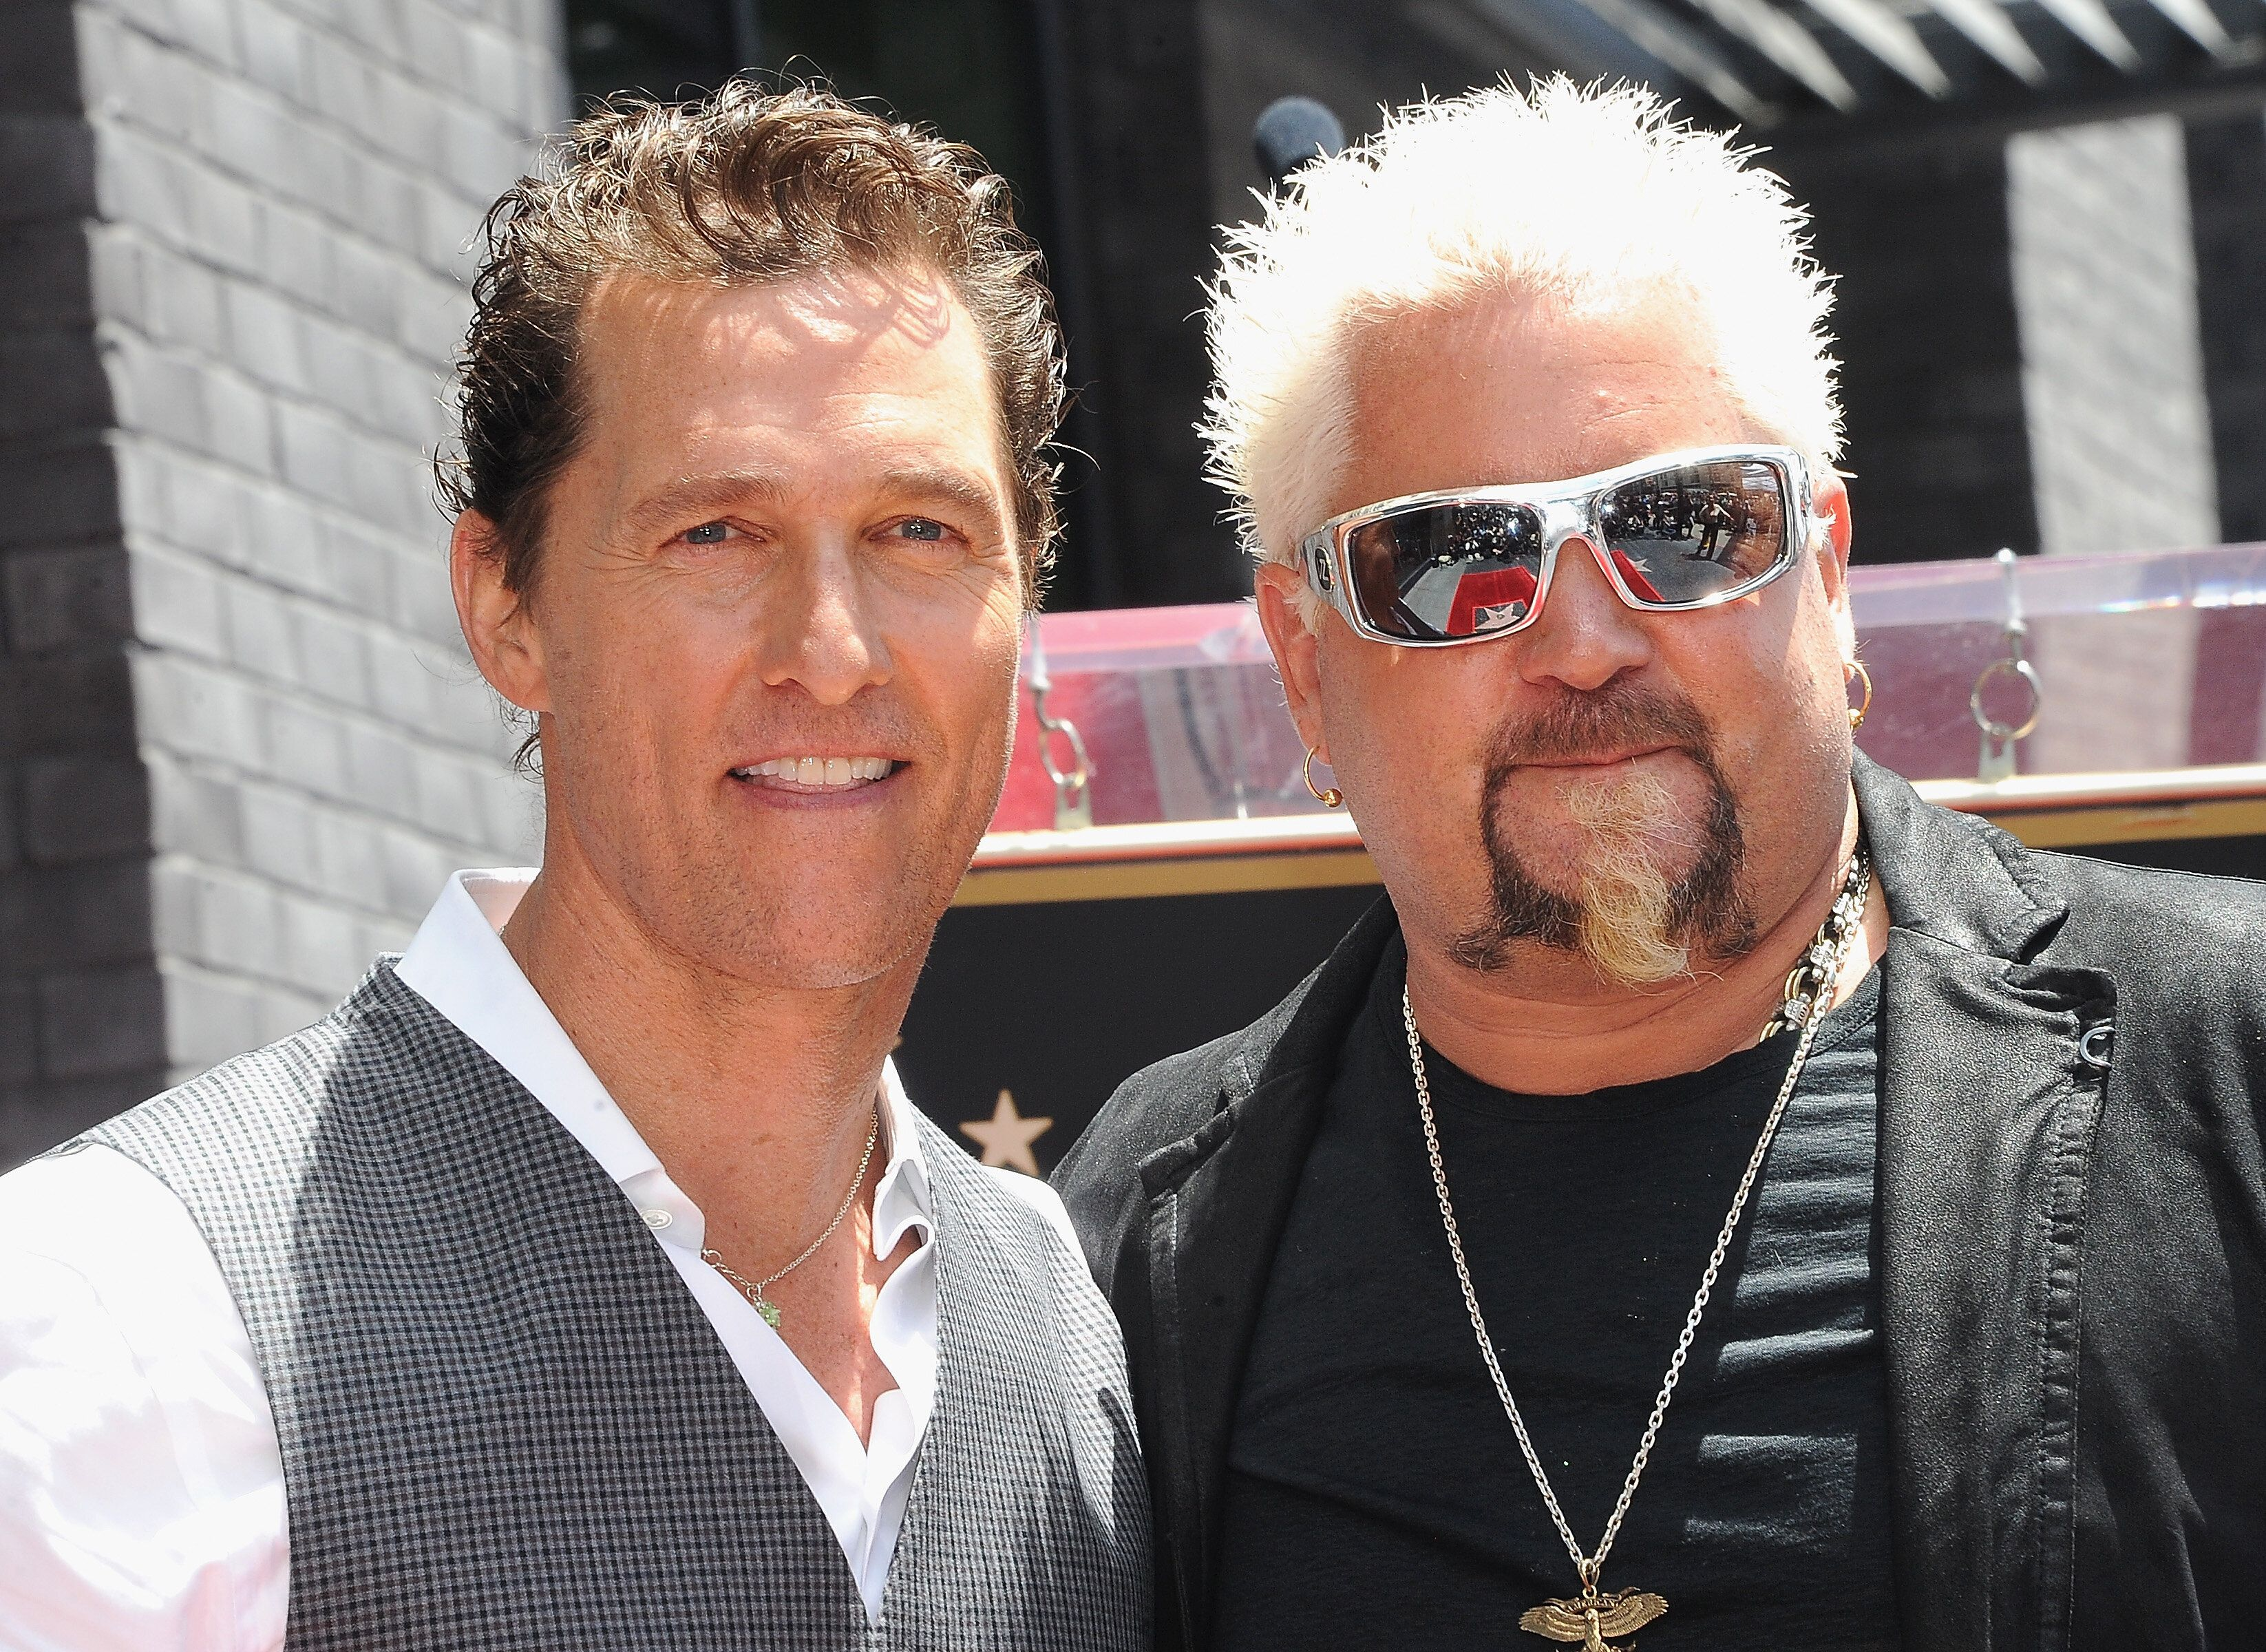 HOLLYWOOD, CA - MAY 22:  Matthew McConaughey with Guy Fieri at Guy Fieri's Star Ceremony On The Hollywood Walk Of Fame on May 22, 2019 in Hollywood, California.  (Photo by Albert L. Ortega/Getty Images)